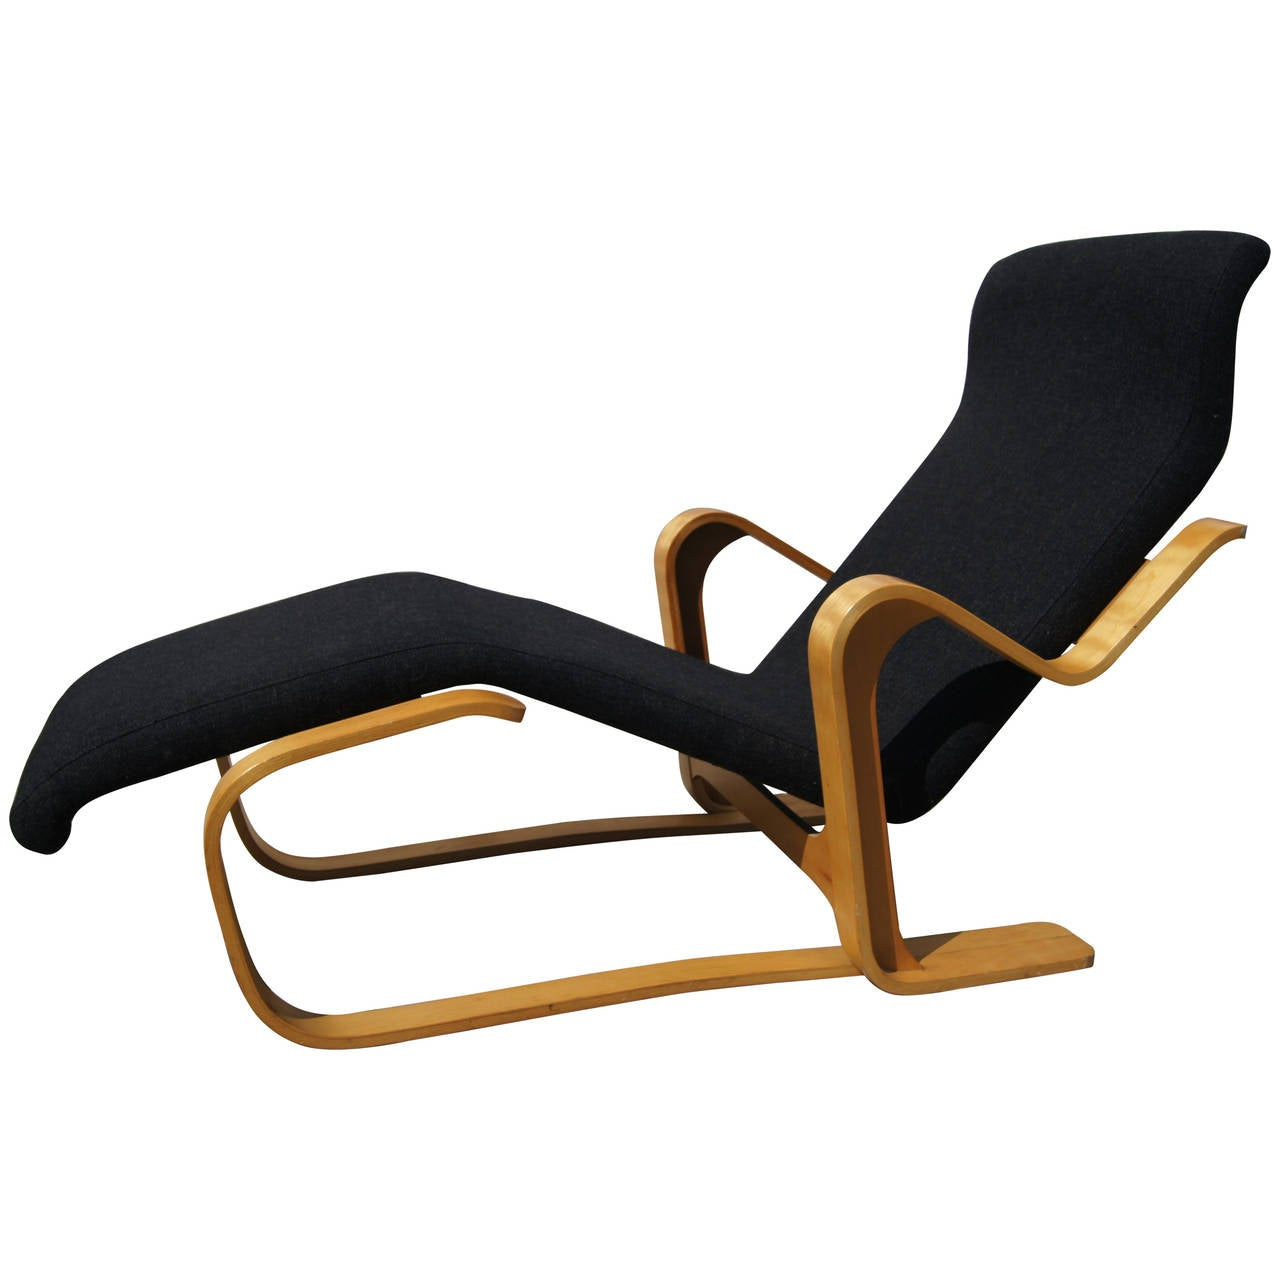 chaise longue by marcel breuer for gavina for sale at 1stdibs. Black Bedroom Furniture Sets. Home Design Ideas